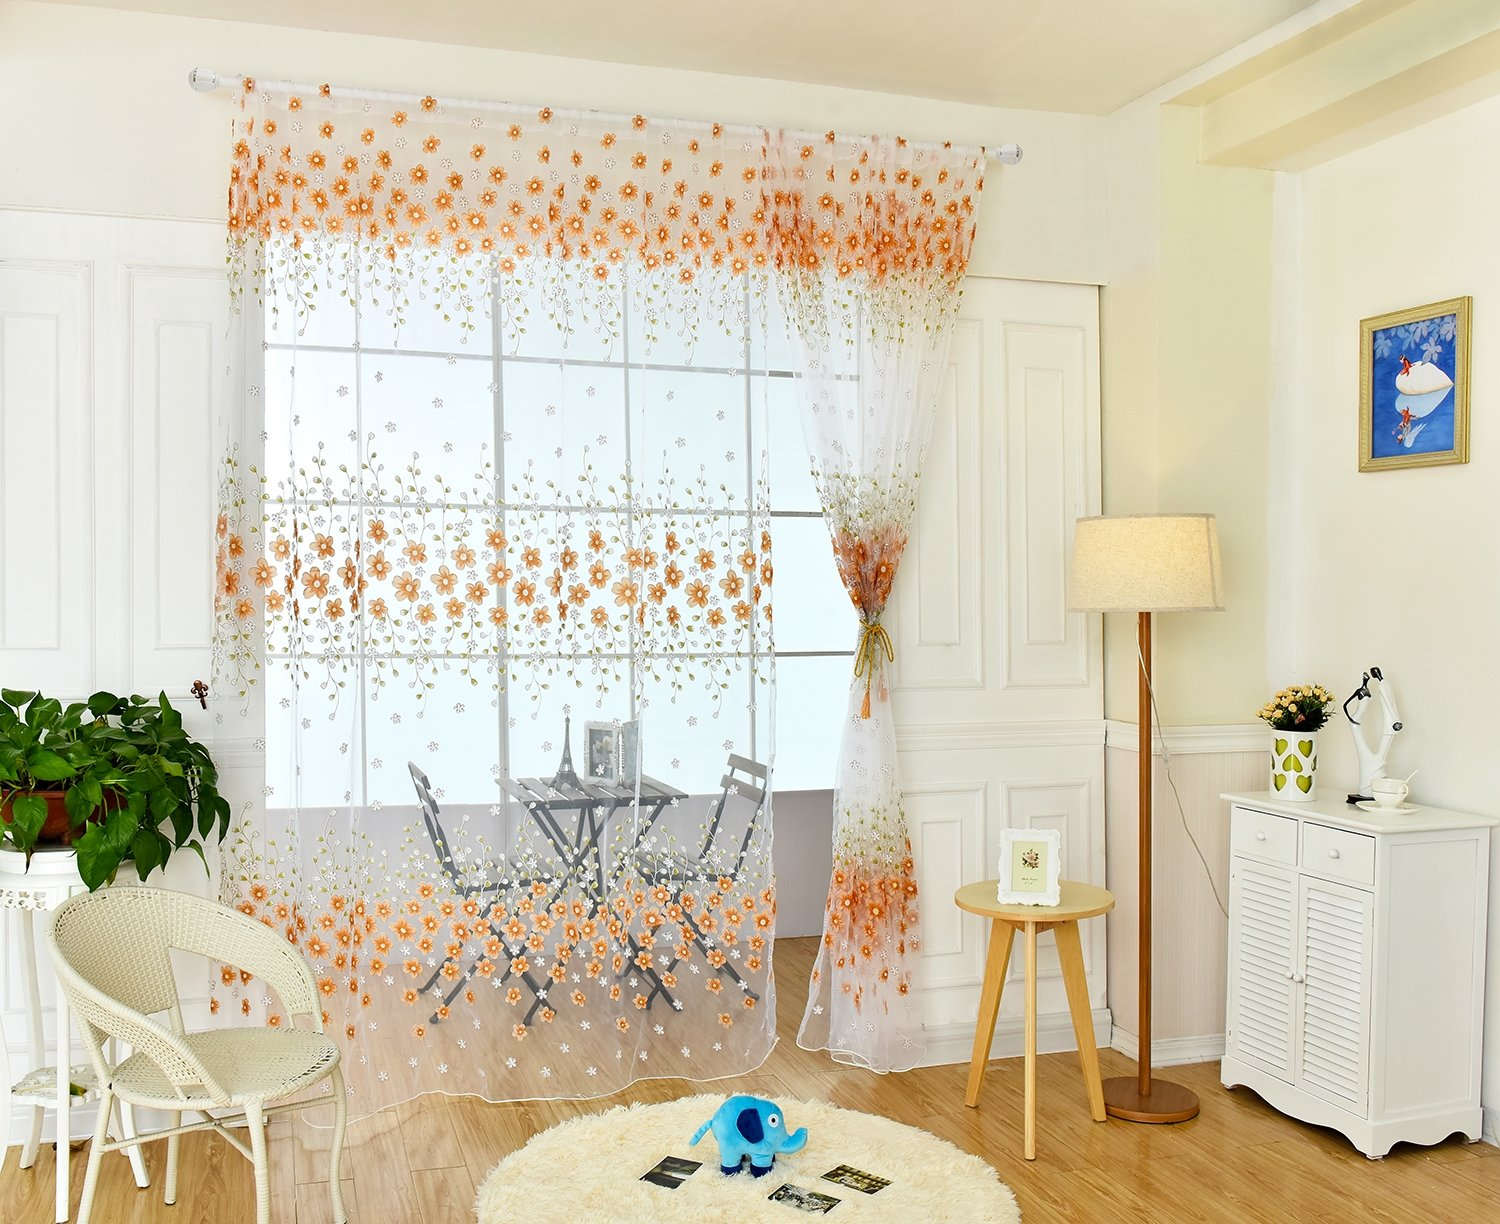 fa621fbfdef AGAING Sheer Curtains Panel Rod Pocket Headings Voile Window Panel For  Bedroom